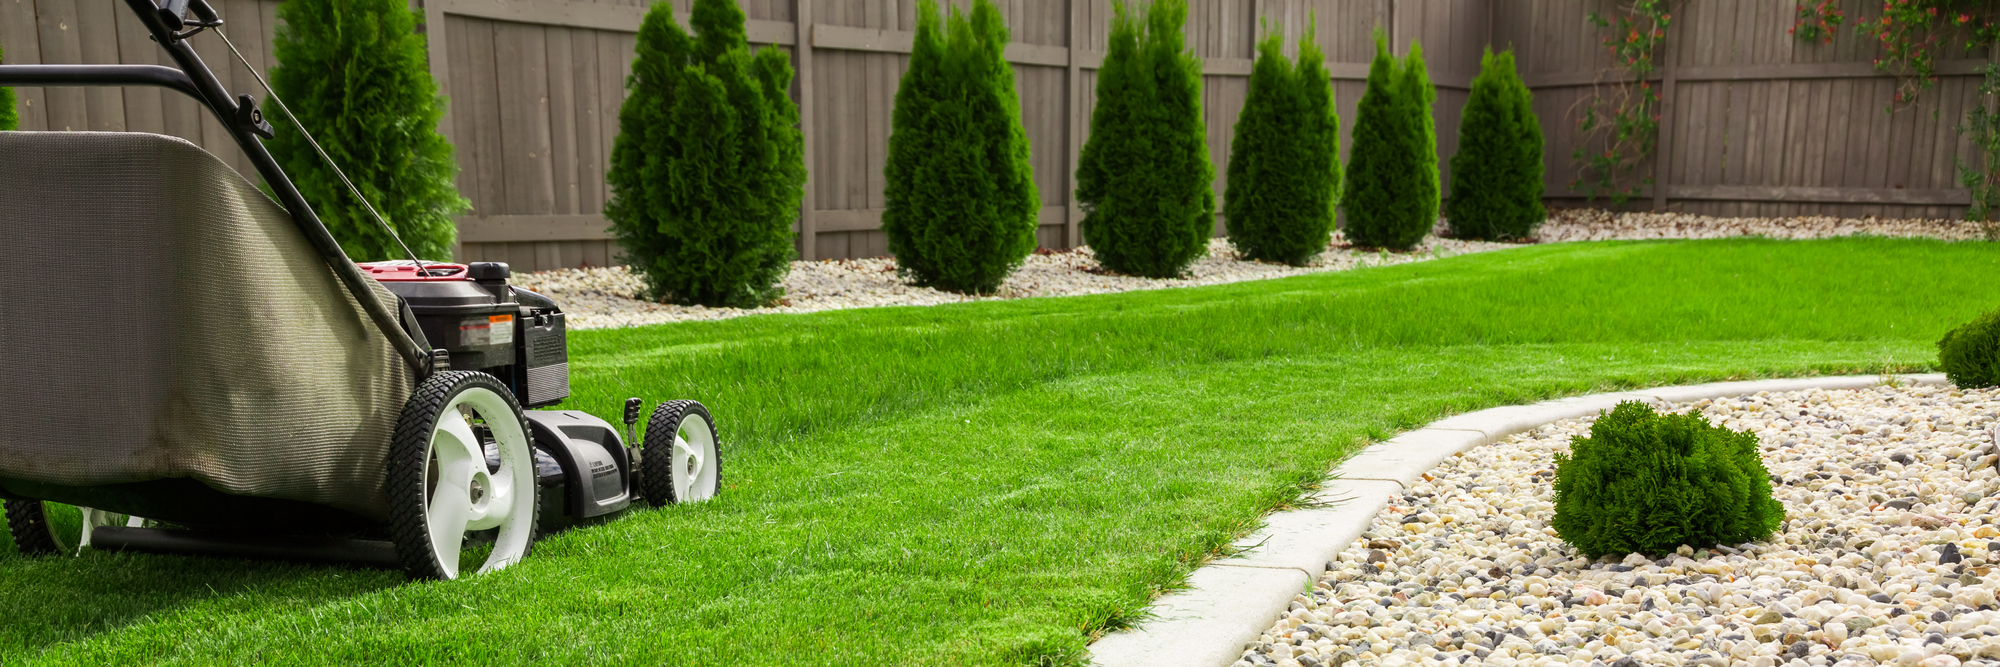 Grass isn't always greener—here's what to plant instead